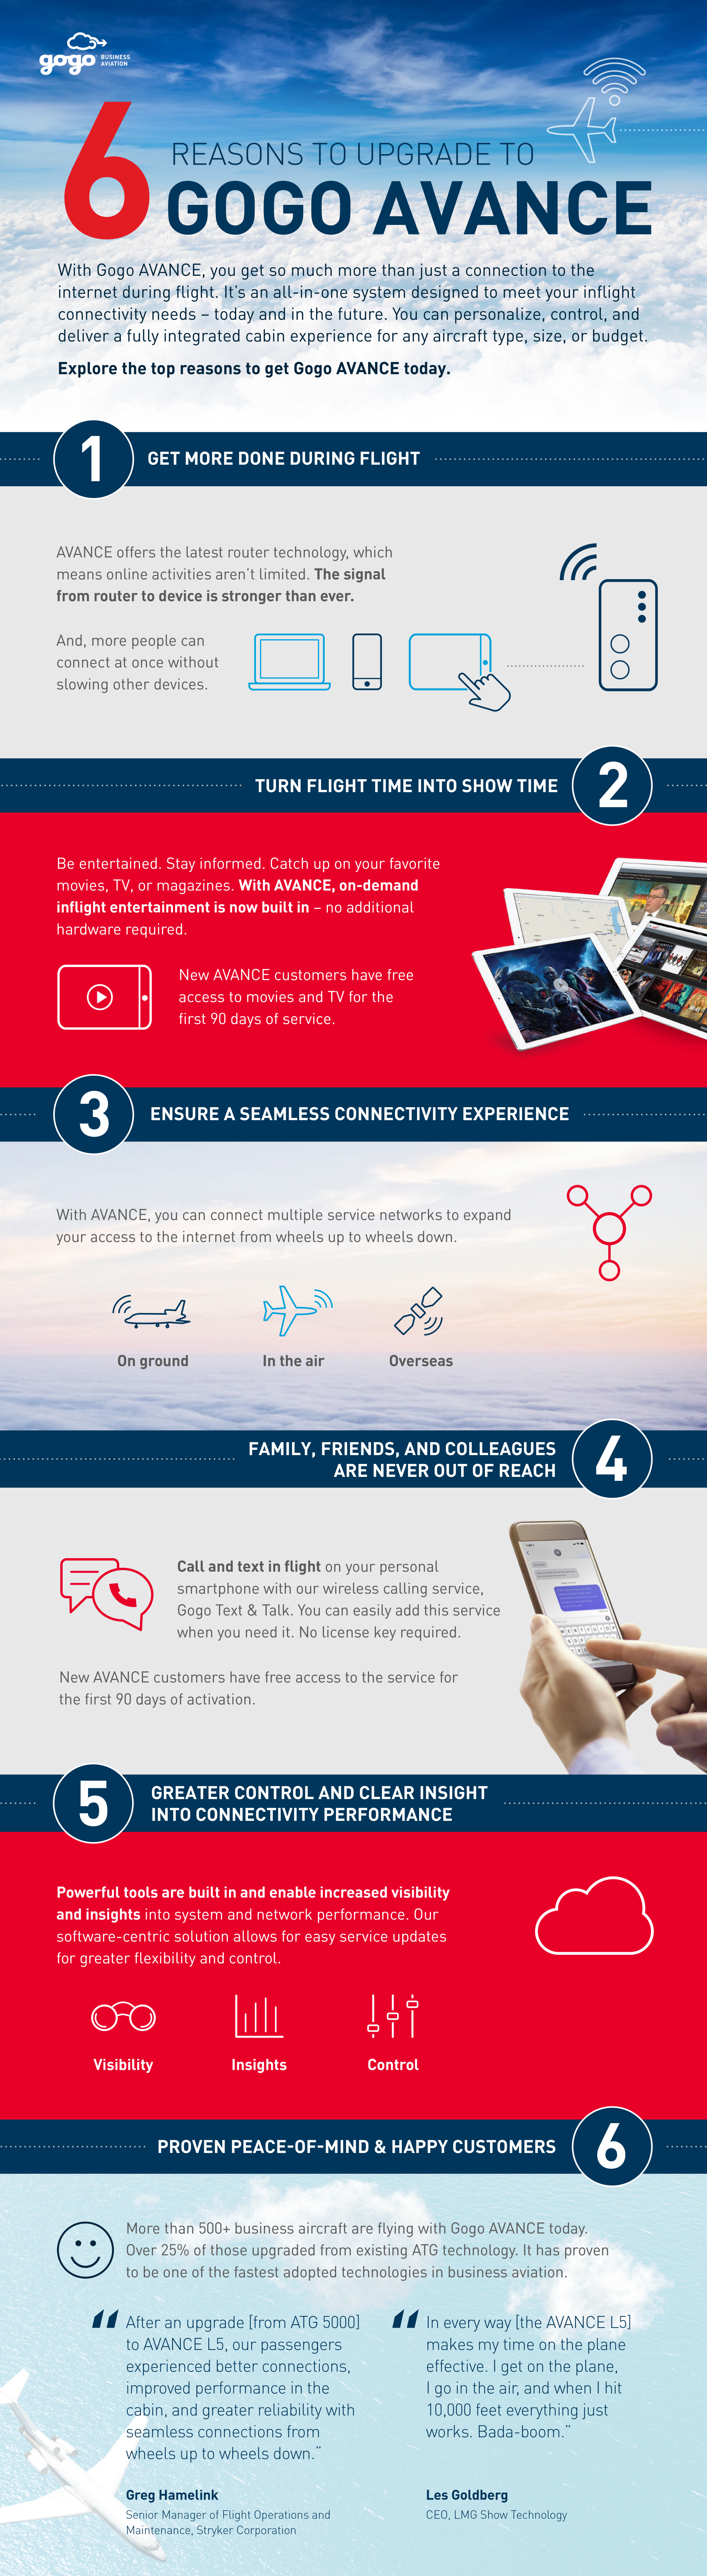 Gogo Infographic-6ReasonstoUpgrade 4-25-19.png